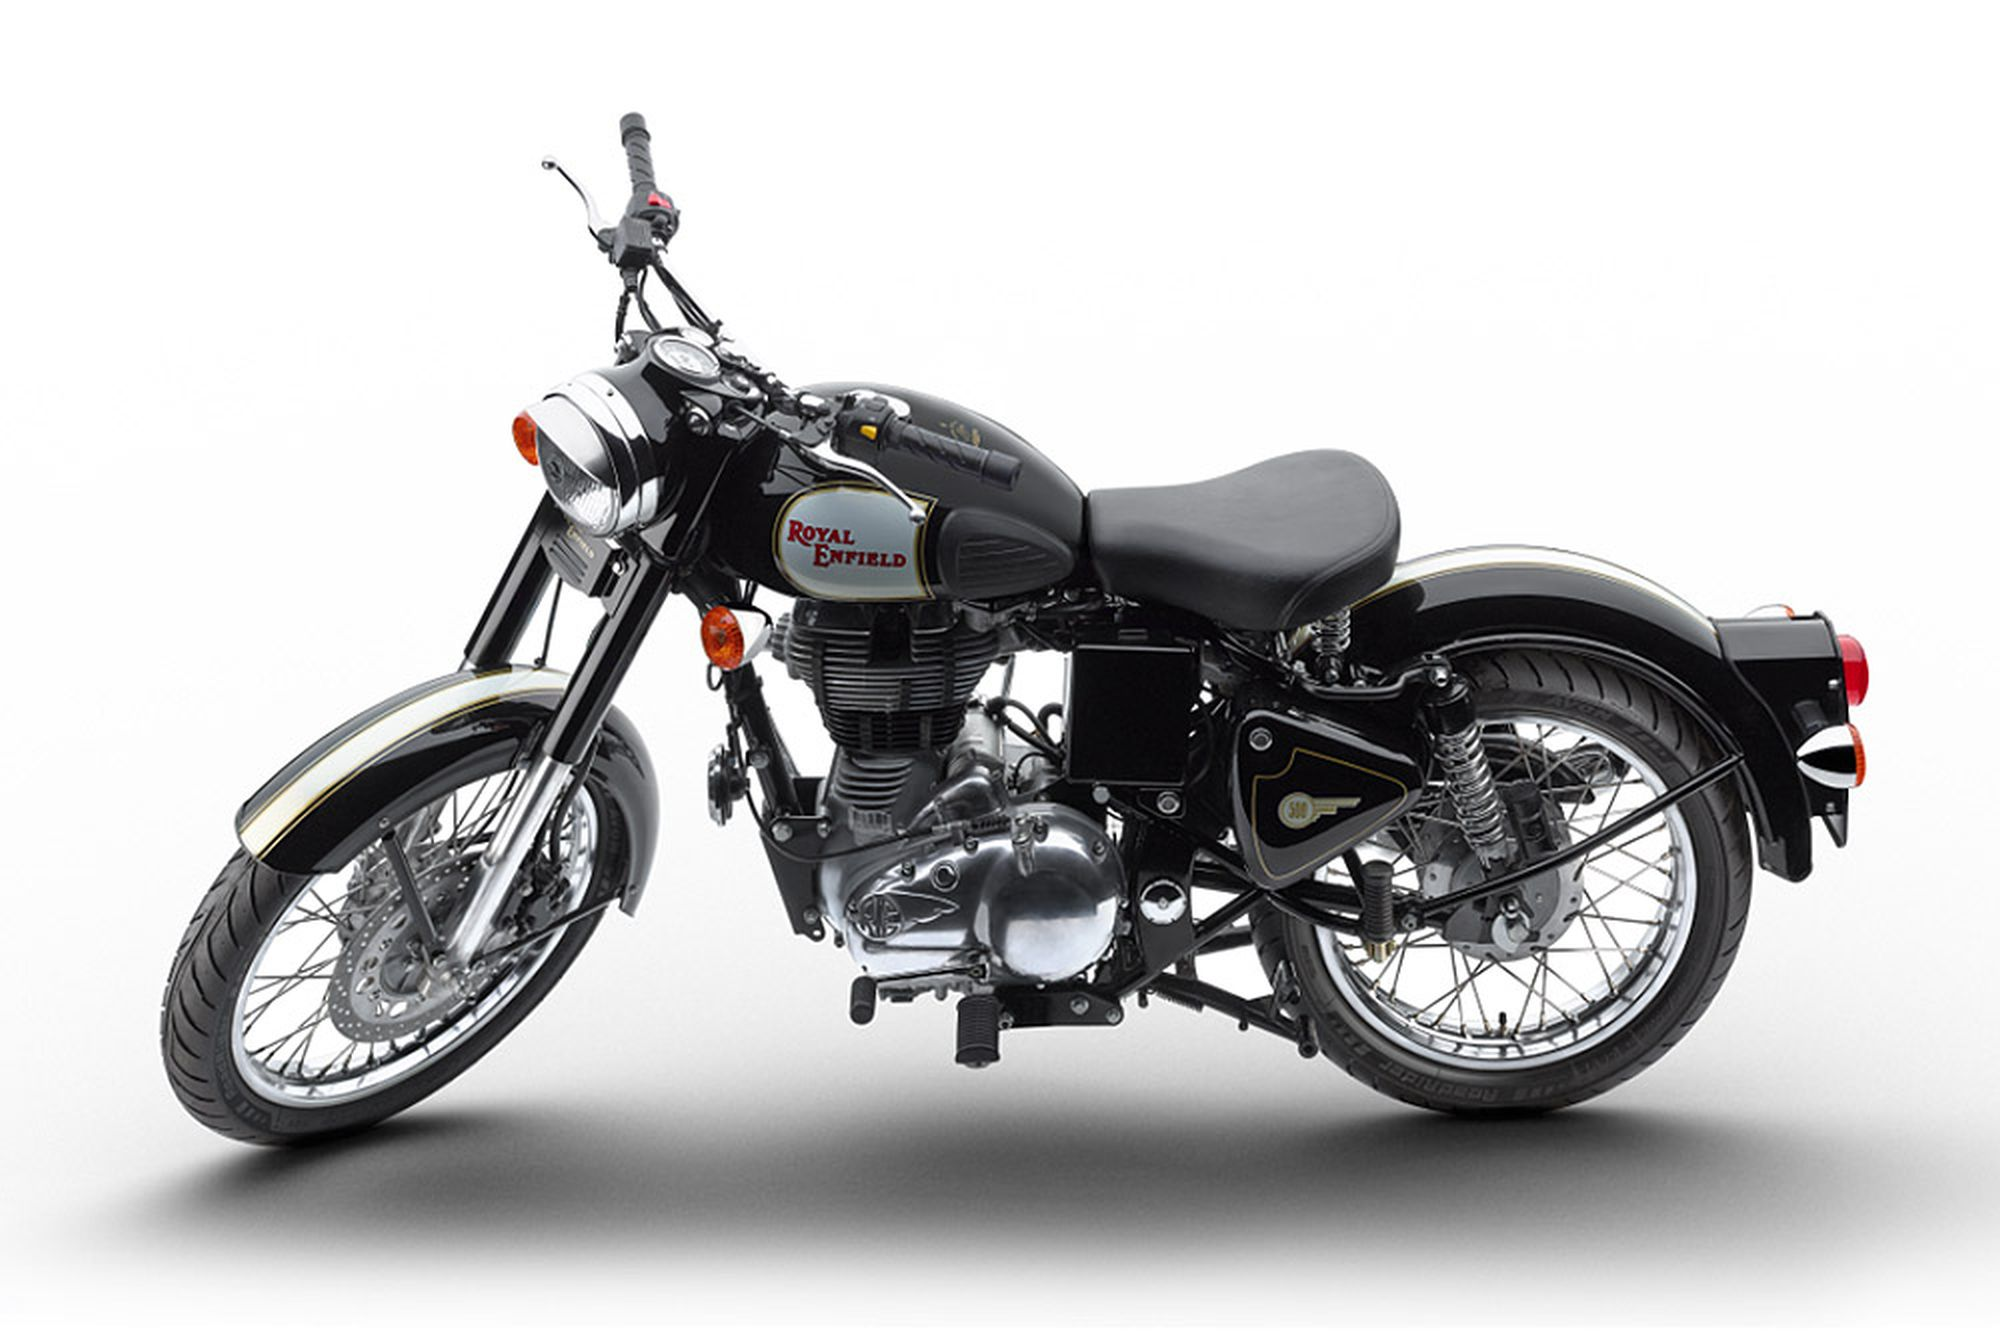 Royal enfield classic battle green price in bangalore dating 1